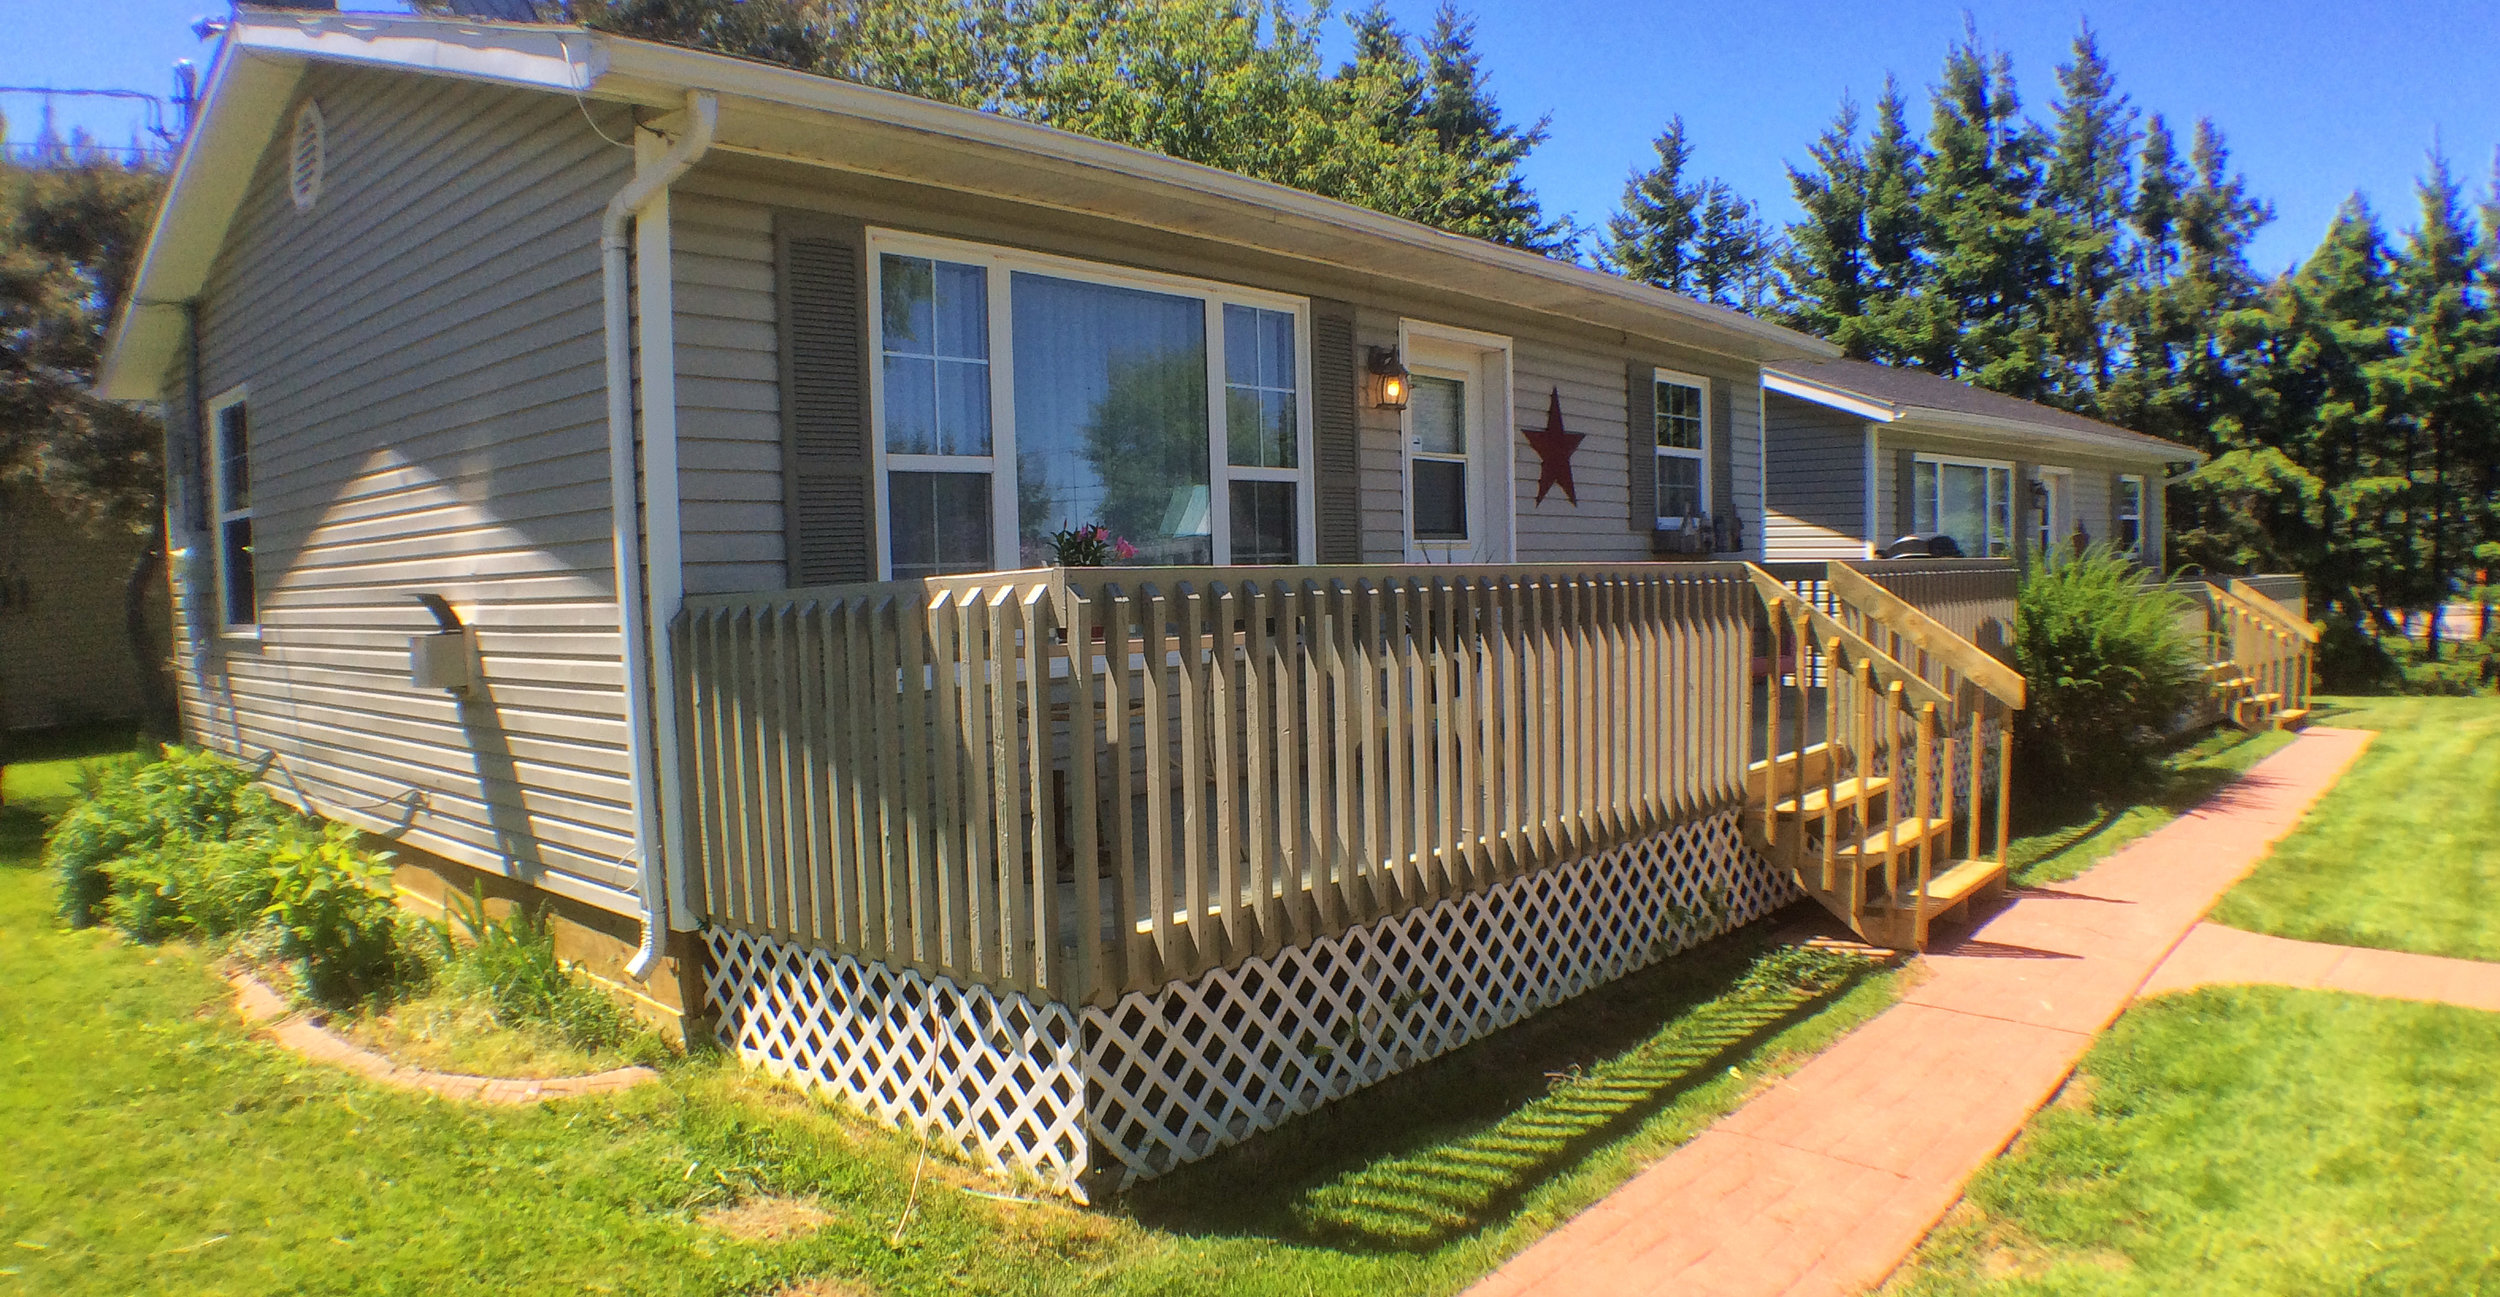 Cottage exteriors with decks and barbecues